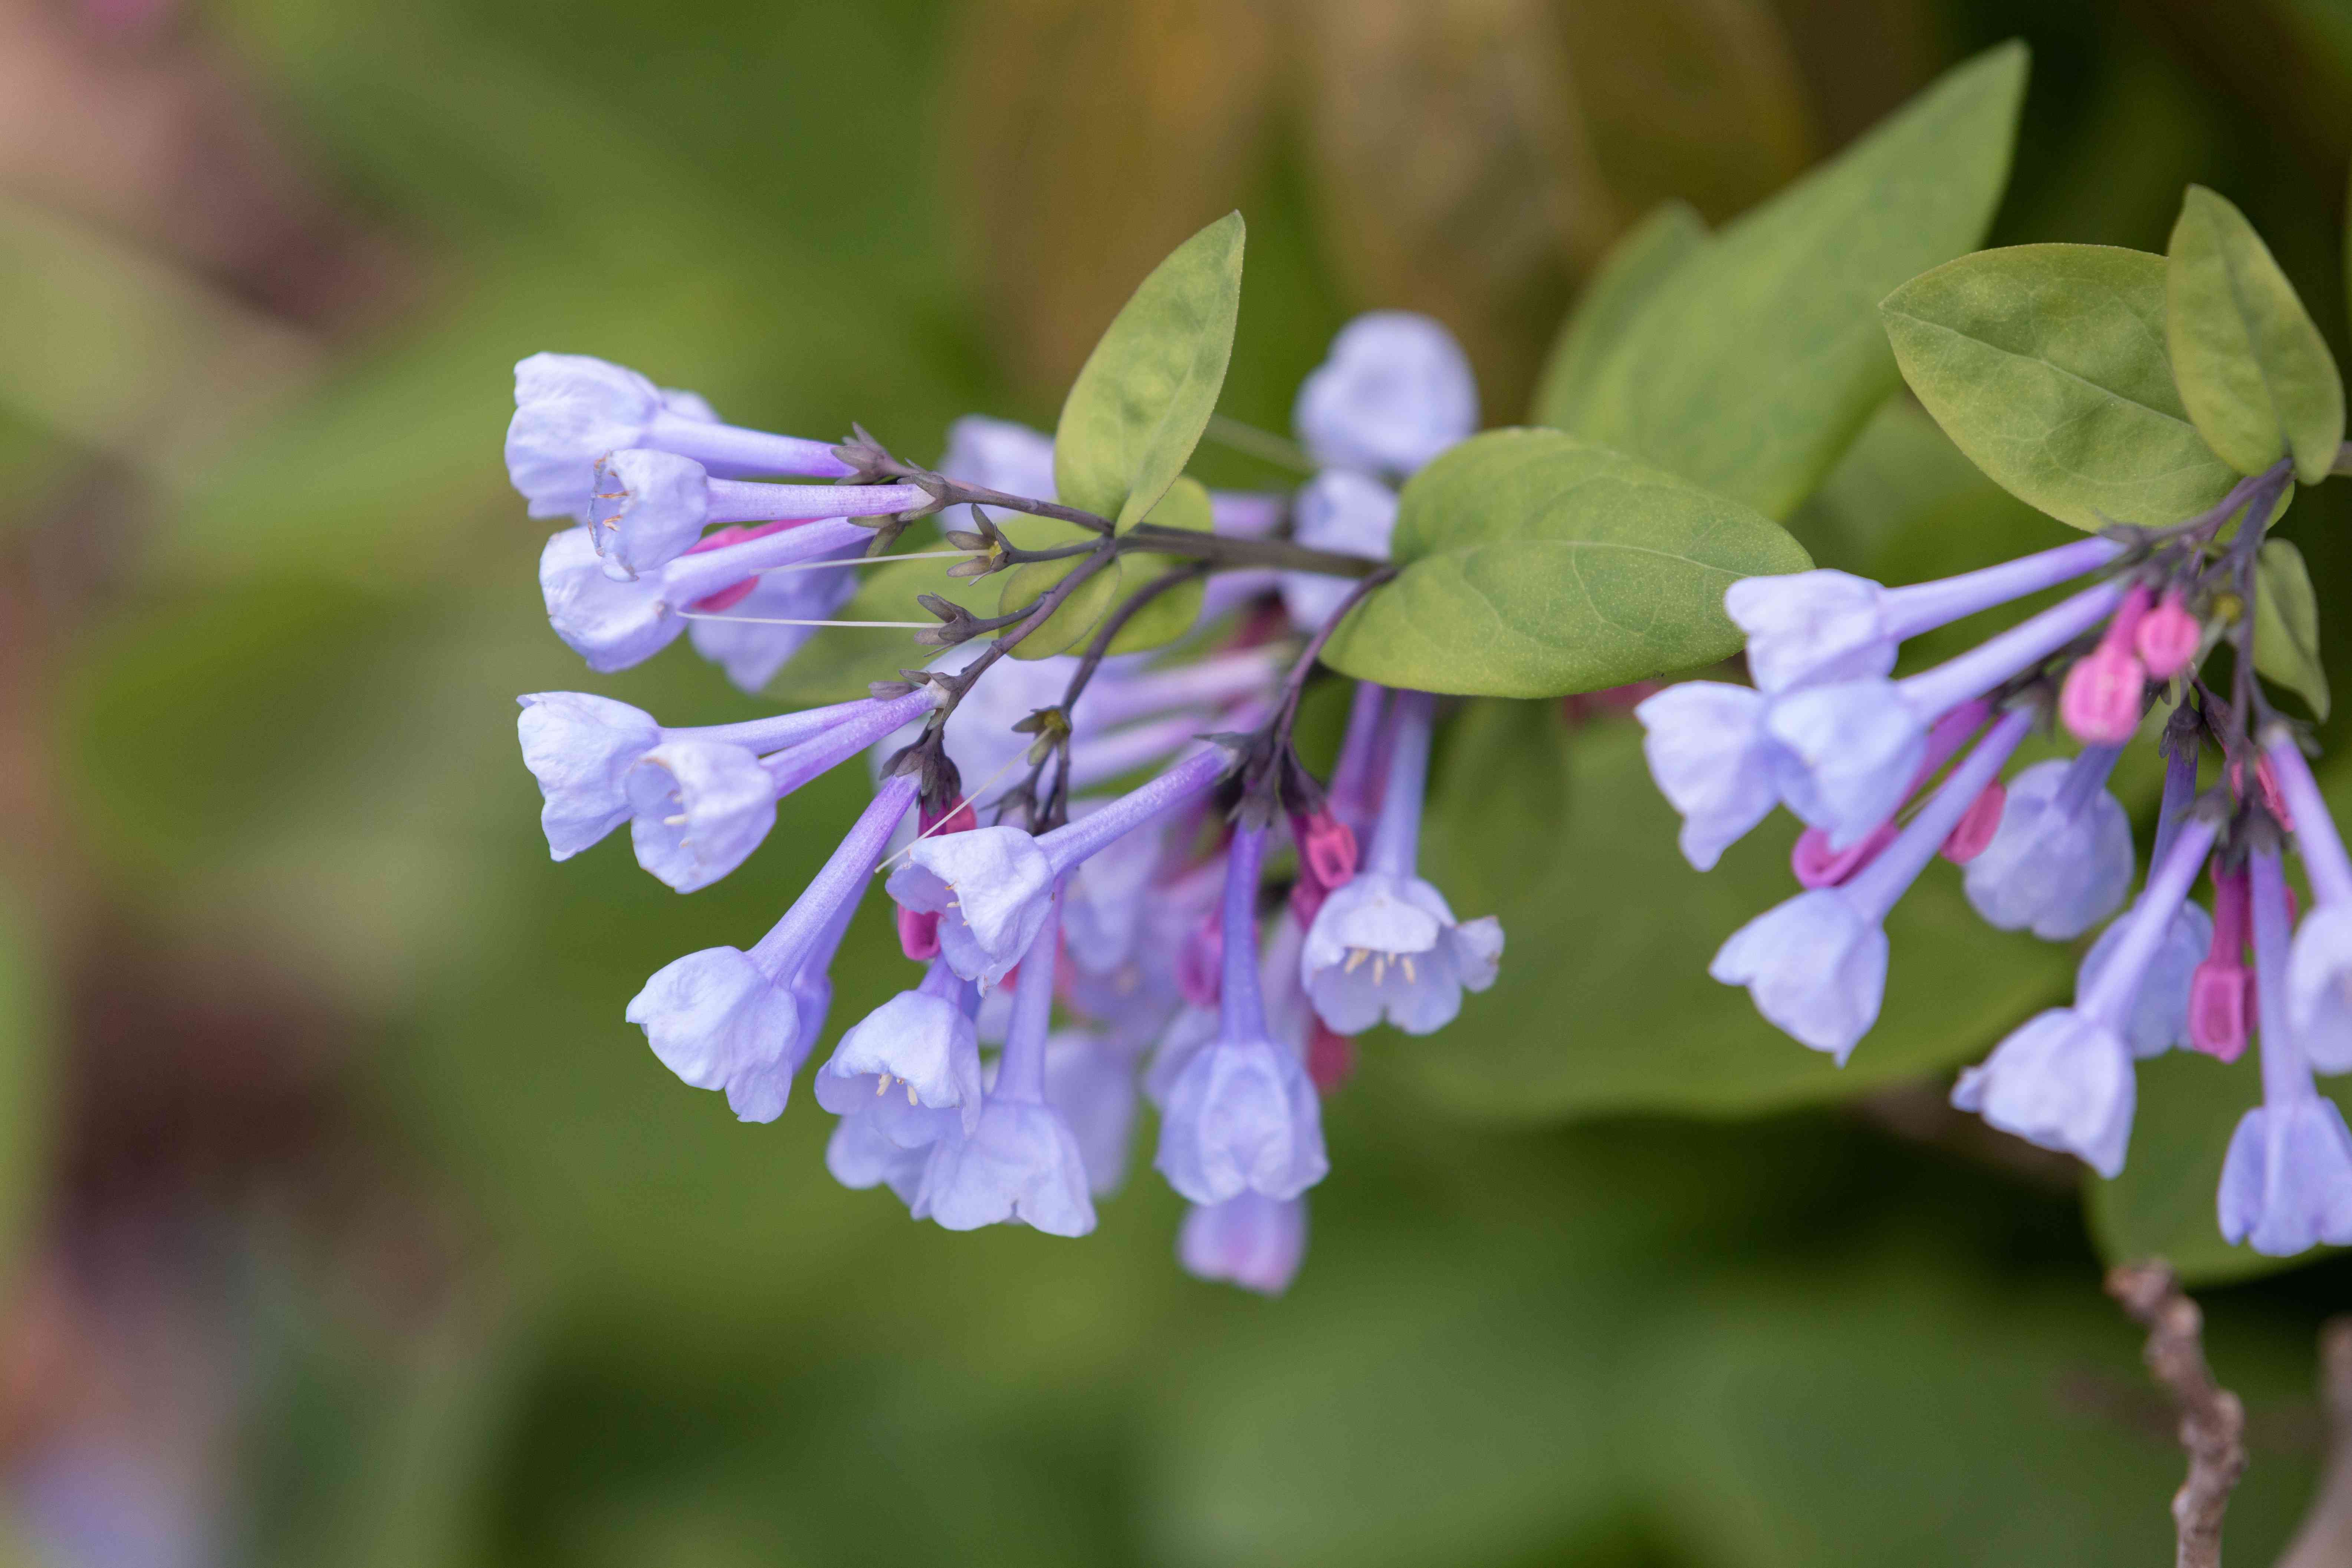 Virginia bluebell plant with light purple trumpet-like flowers on edge of branch closeup